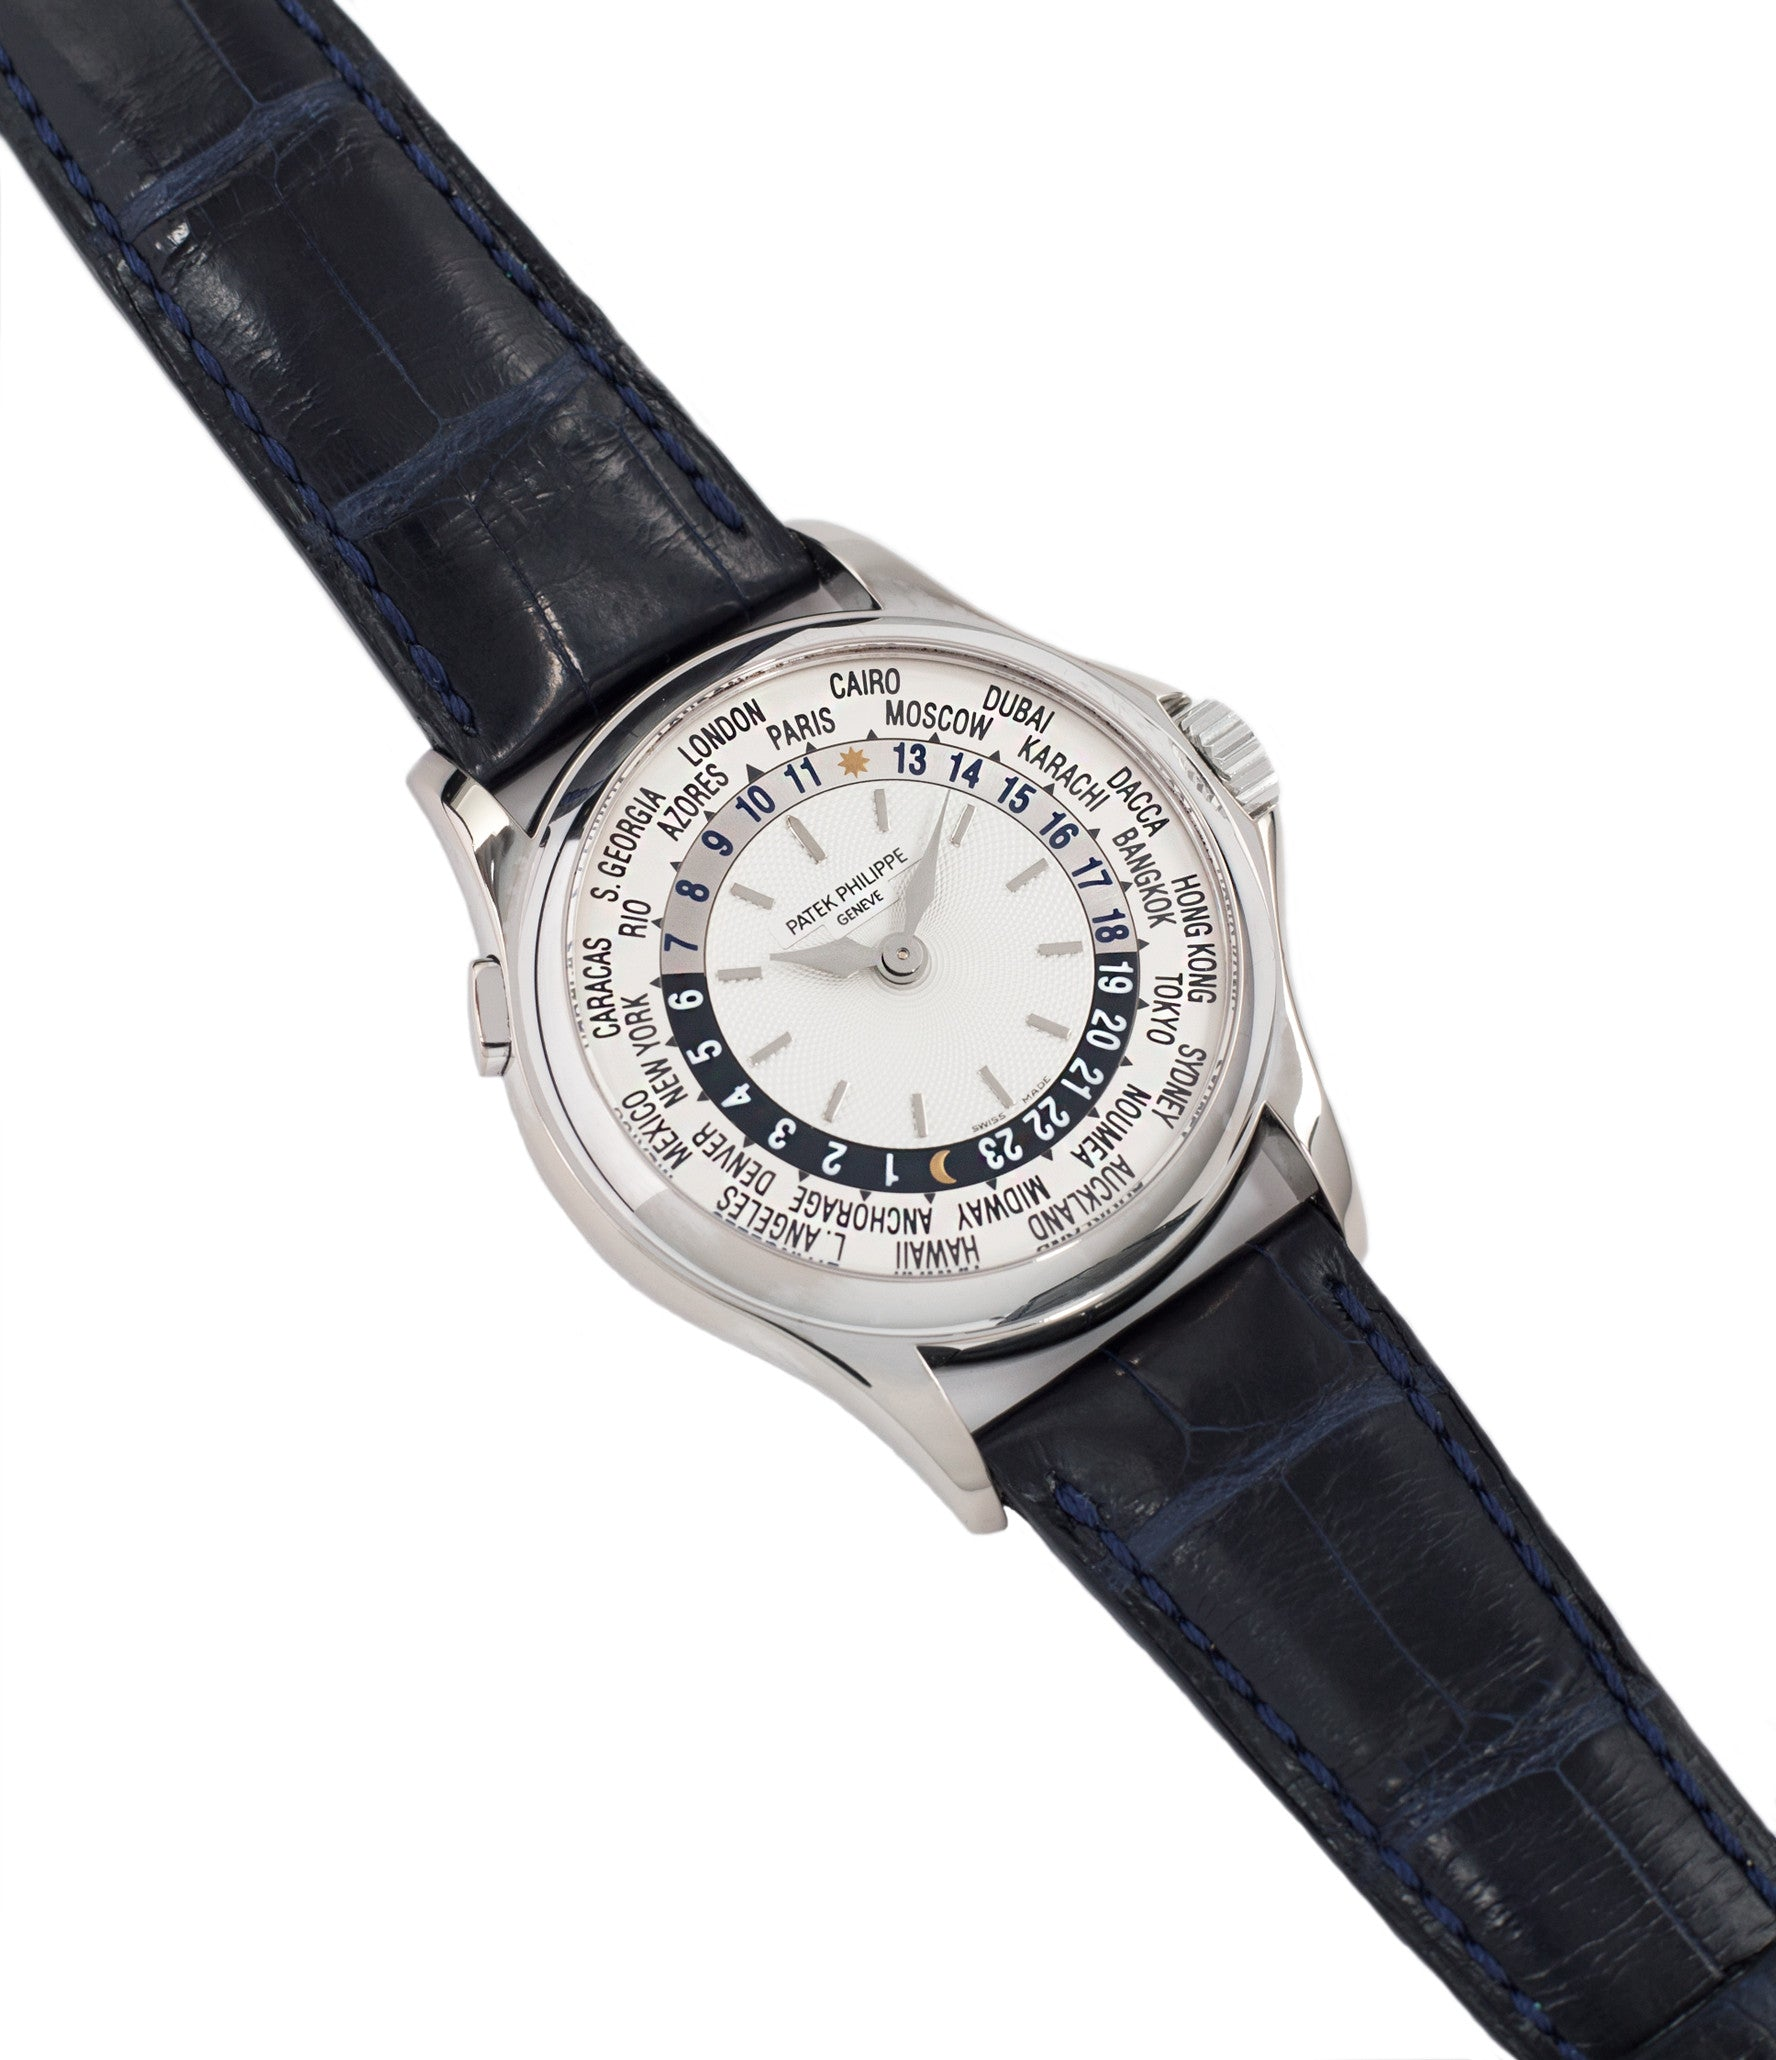 selling Patek Philippe 5110G-001 white gold World-timer luxury dress watch online for sale at A Collected Man London specialist preowned luxury watches